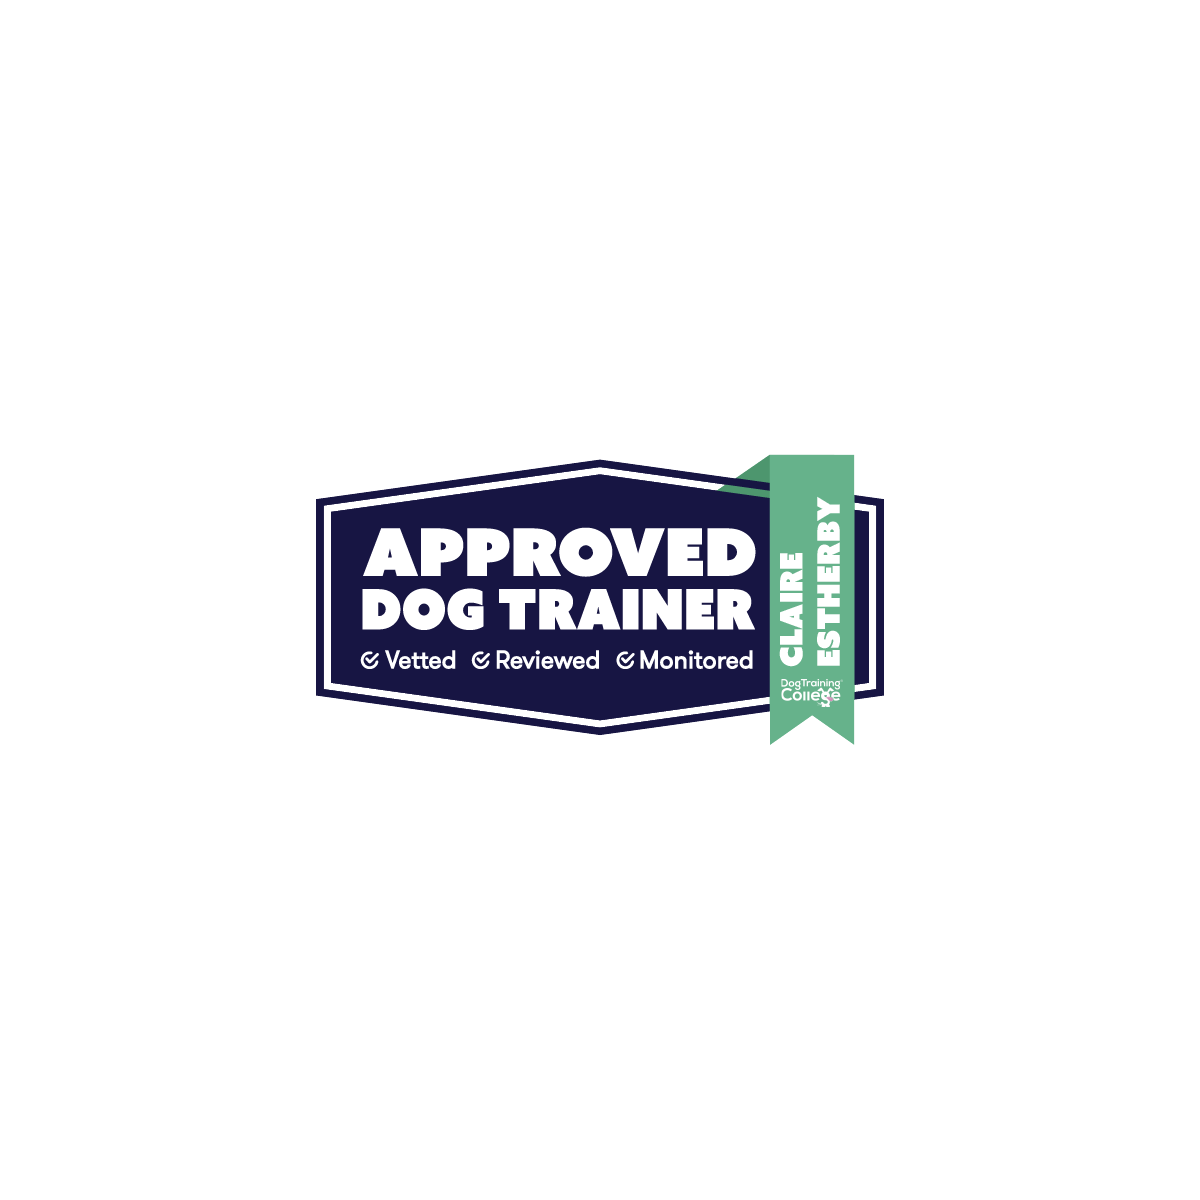 Approved Dog Trainer